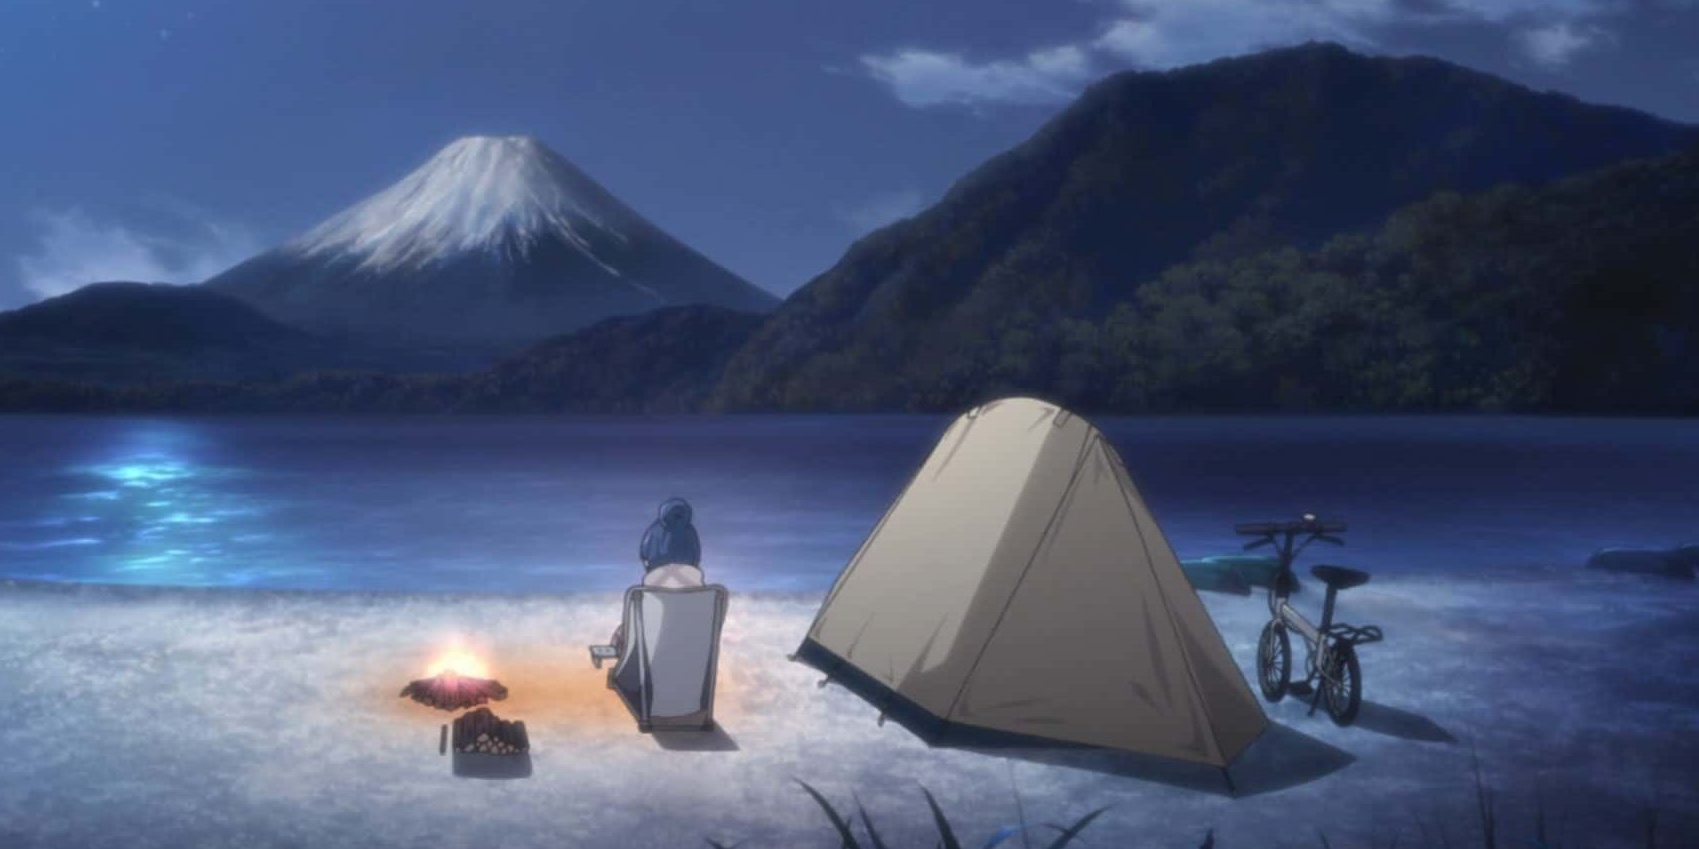 Yuru Camp Fuji View